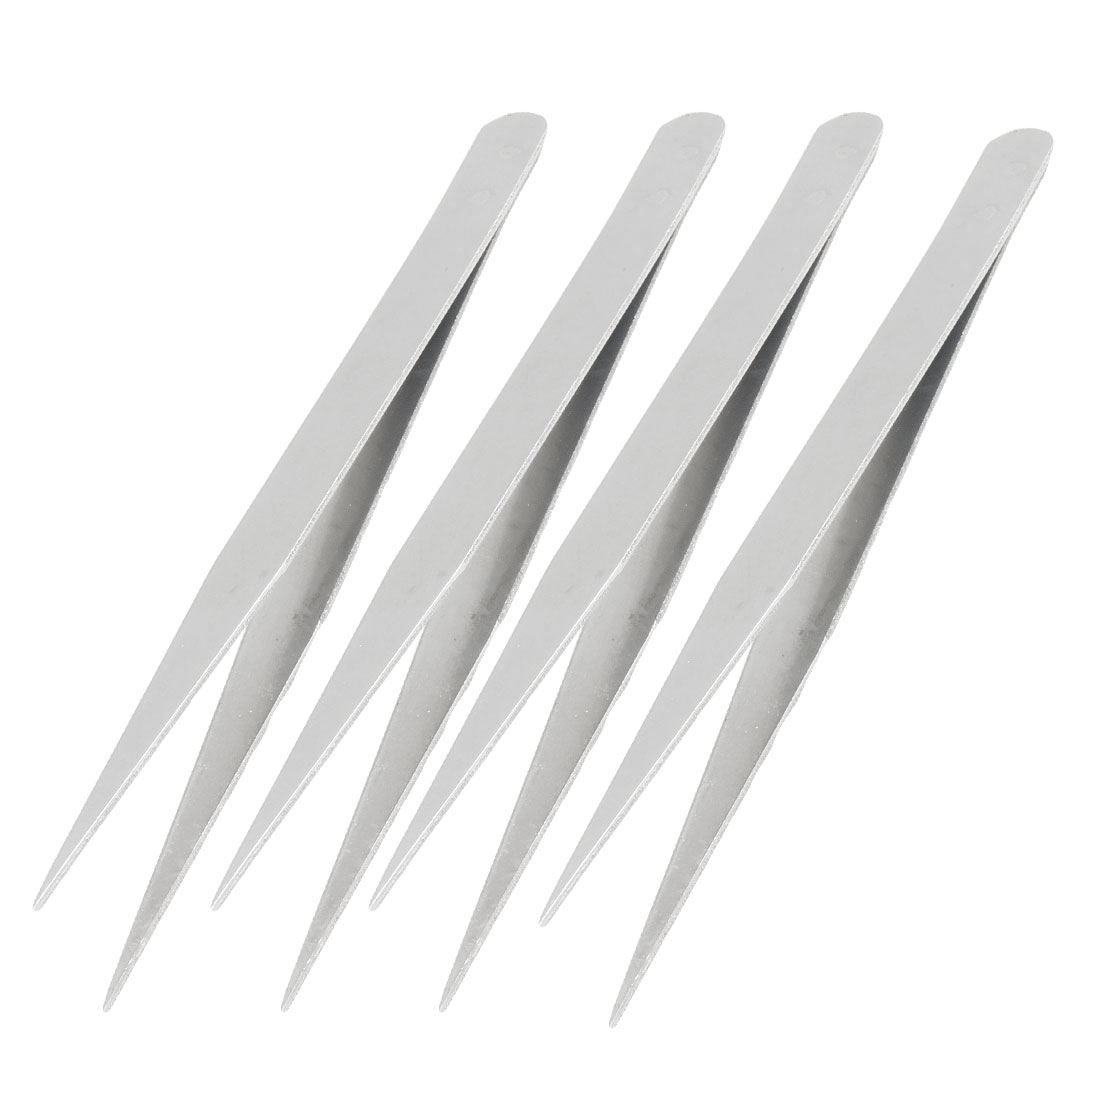 Household Silver Tone Pointy Tip Metal Straight Tweezers 4 Pcs